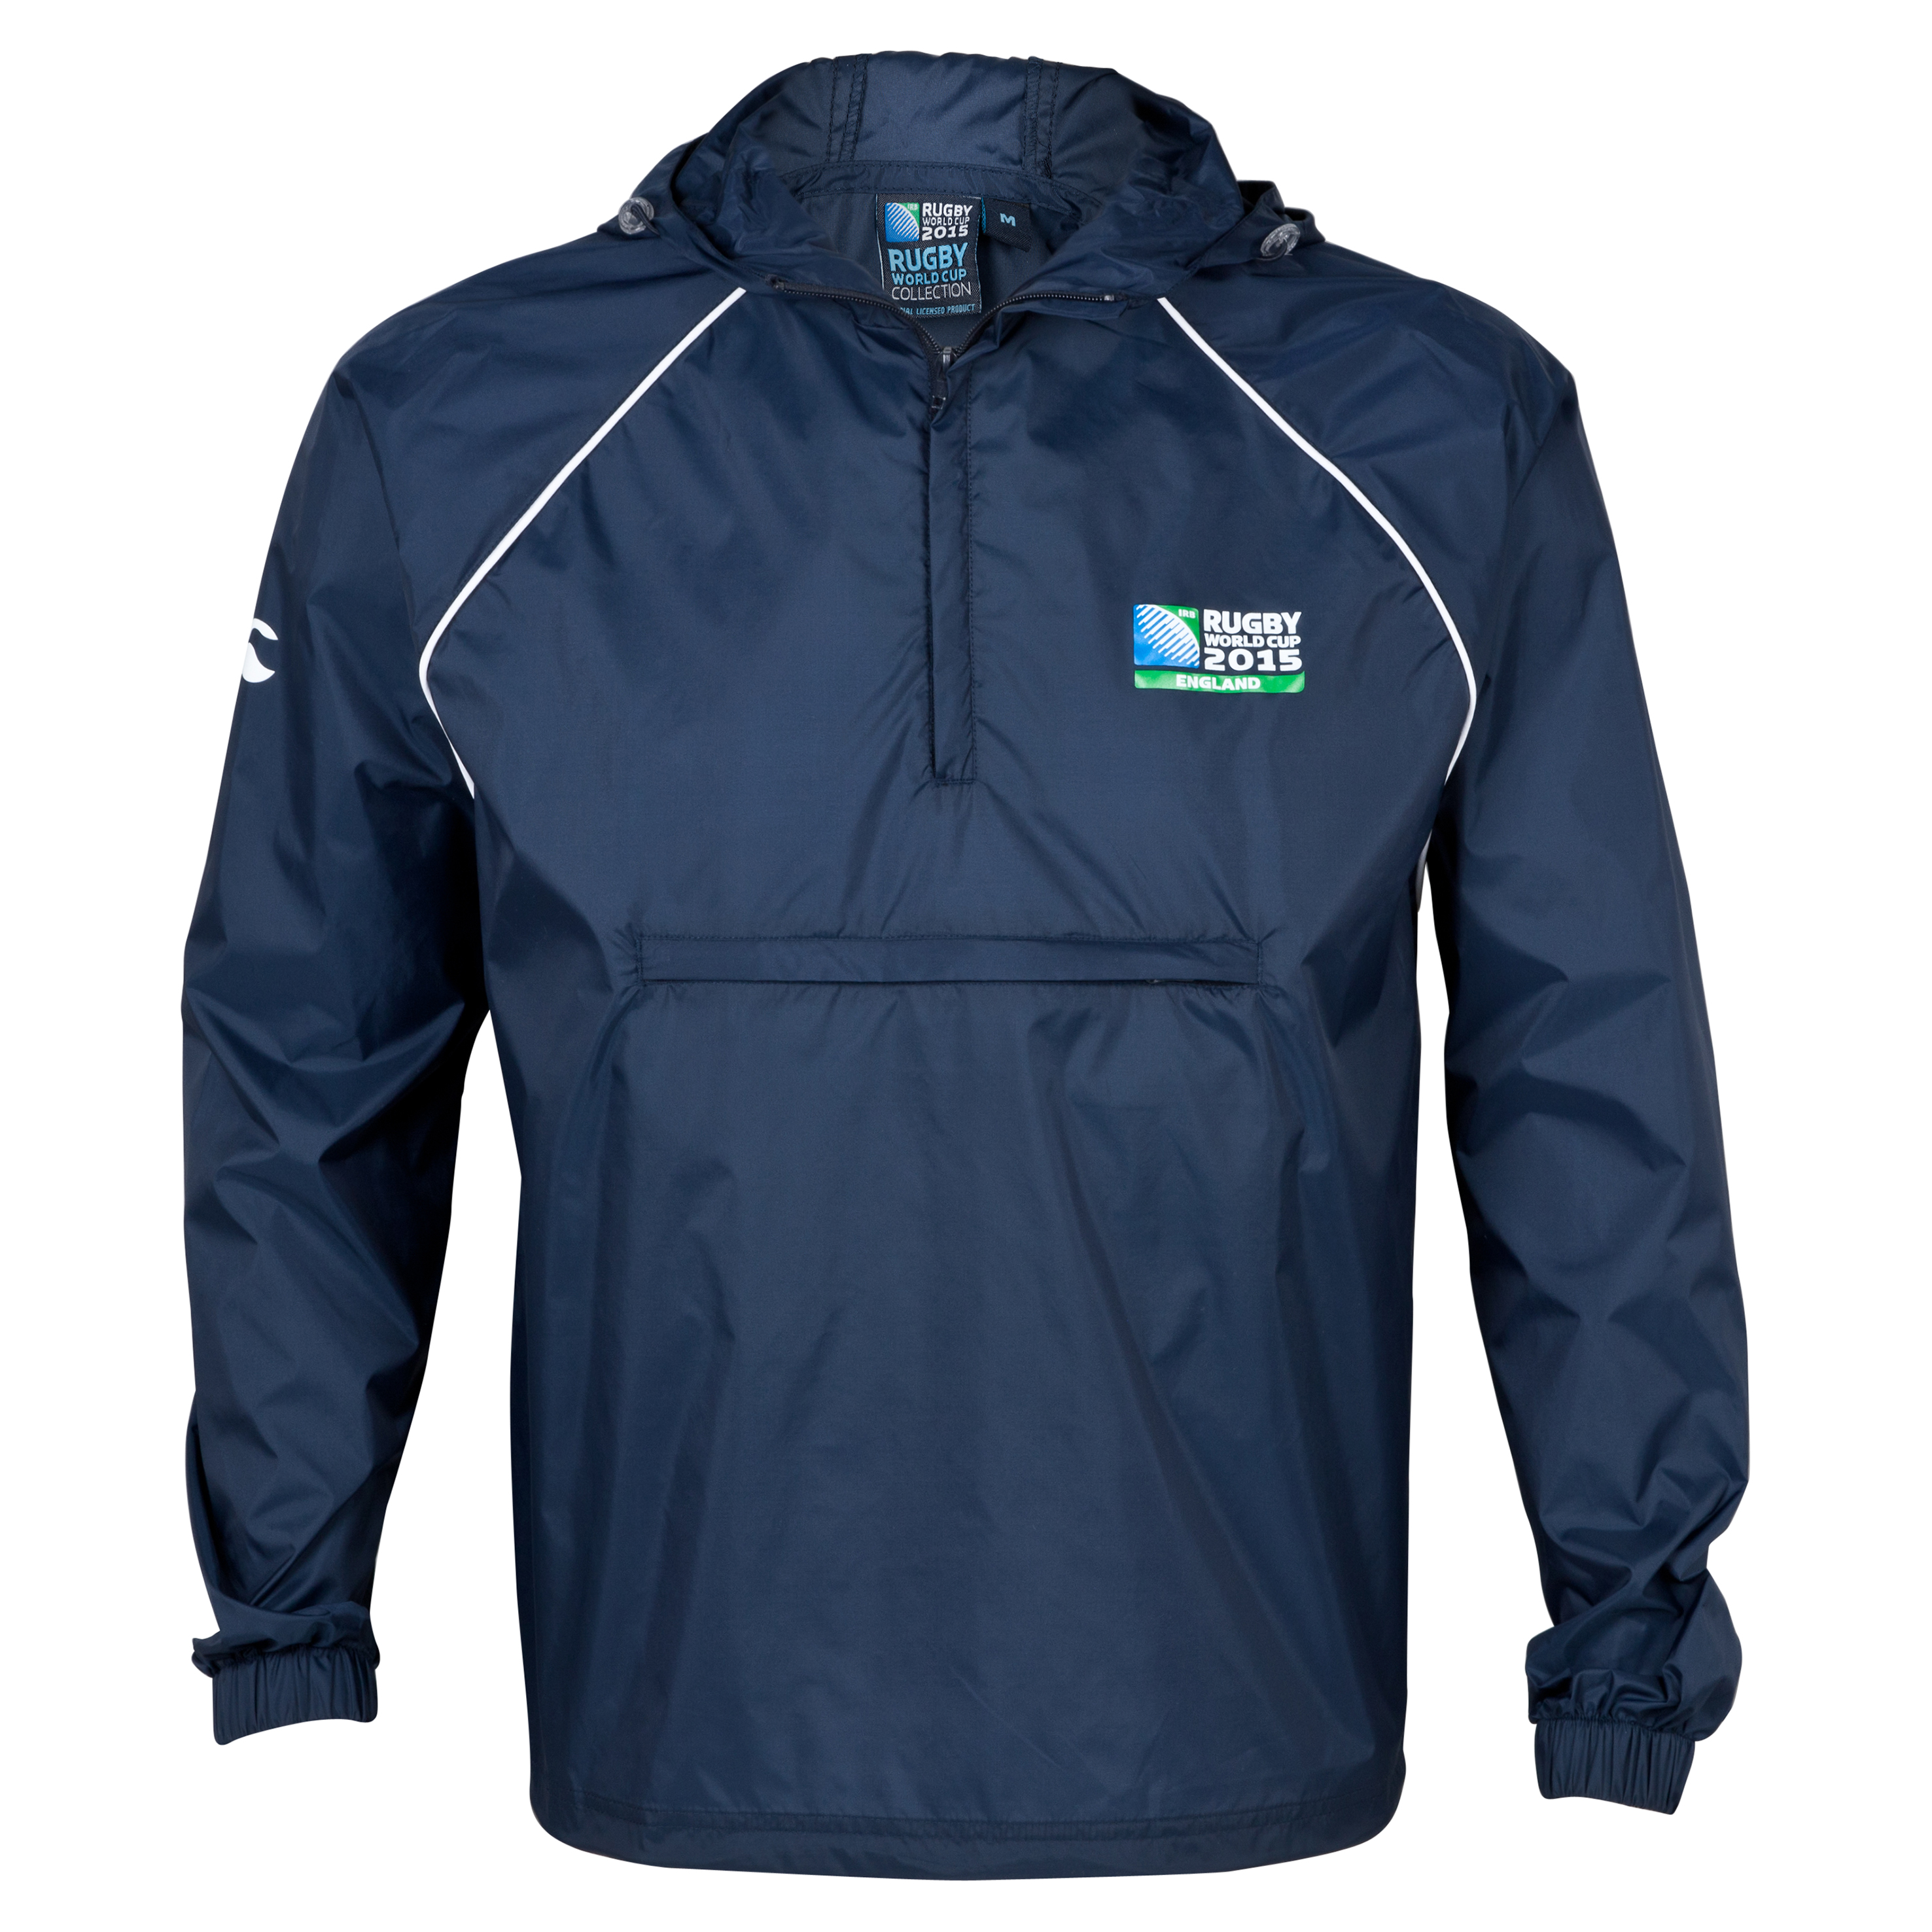 Rugby World Cup 2015 Packable Parka - Navy